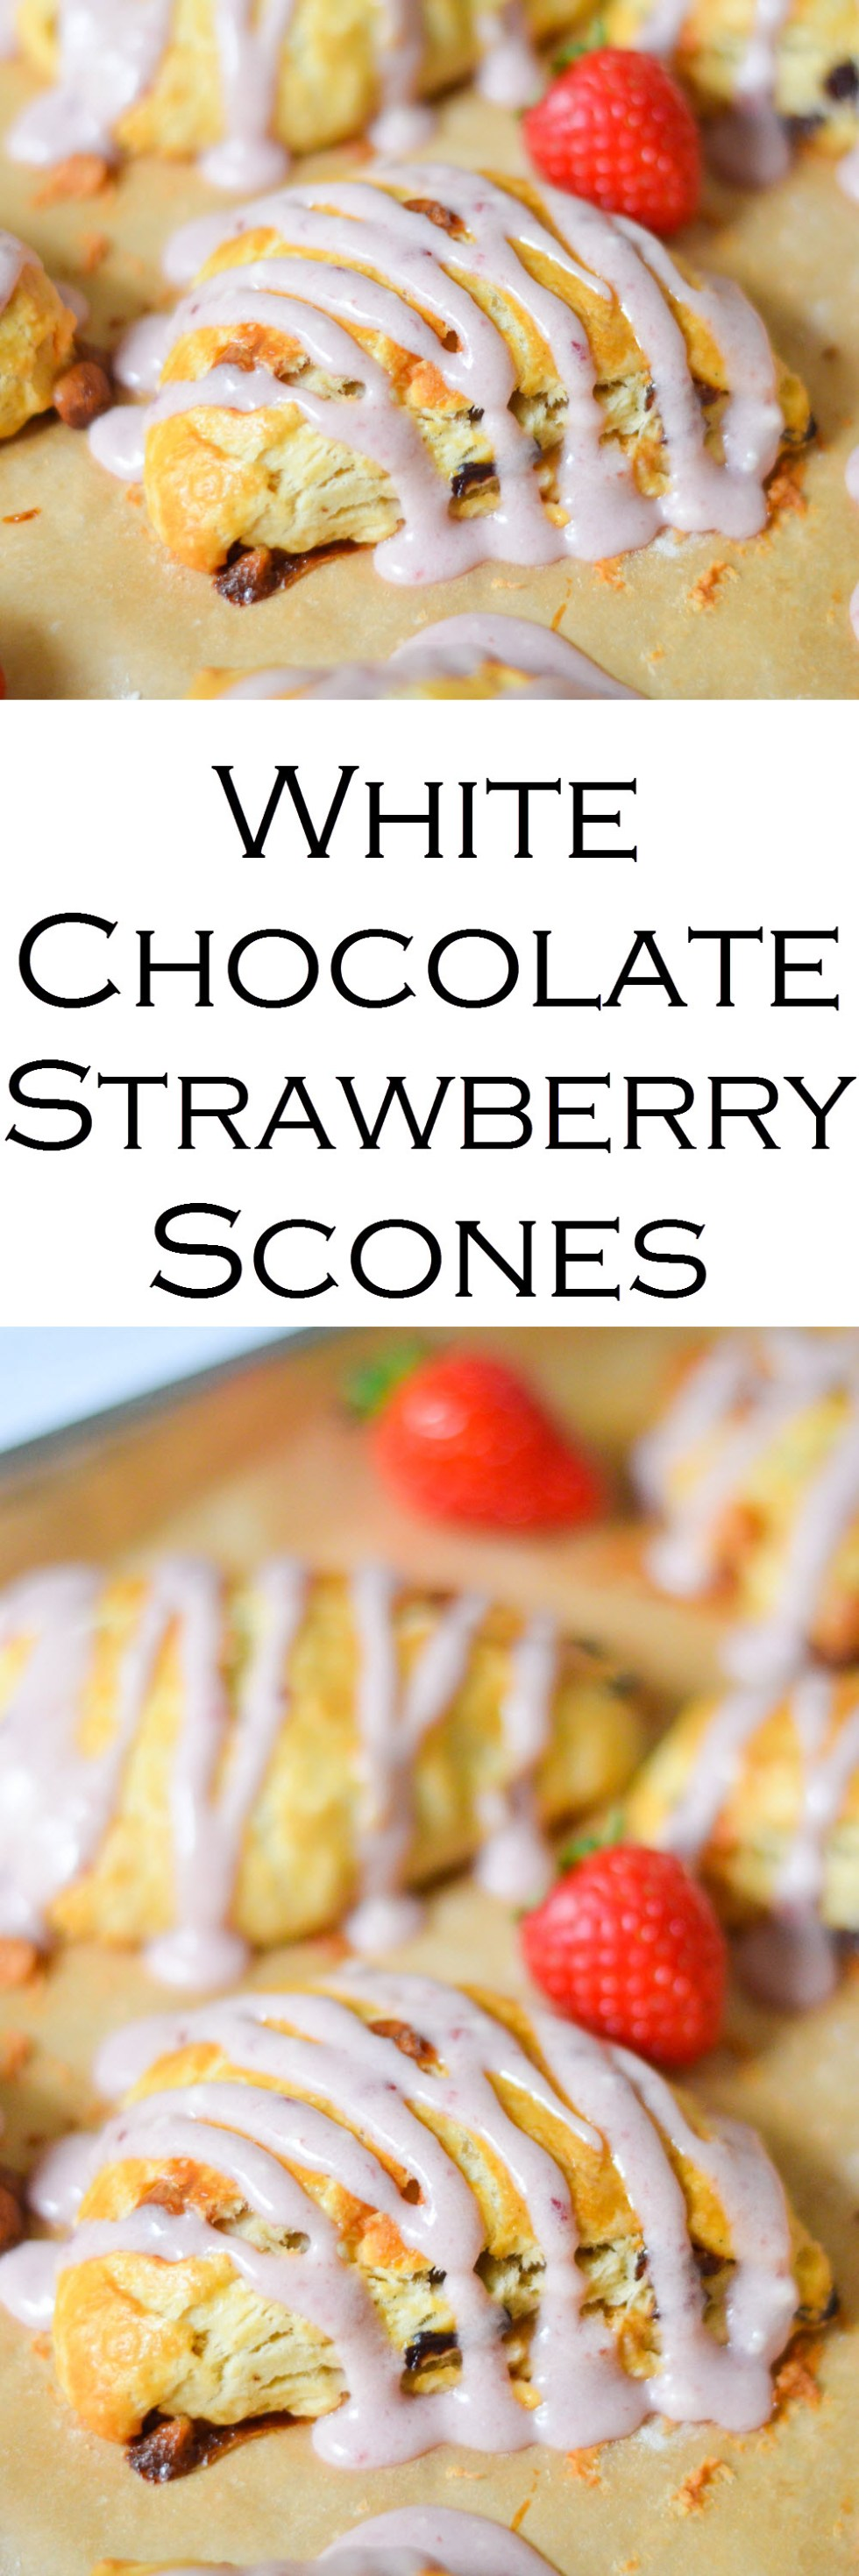 White Chocolate Strawberry Scones w. Strawberry Icing Drizzle